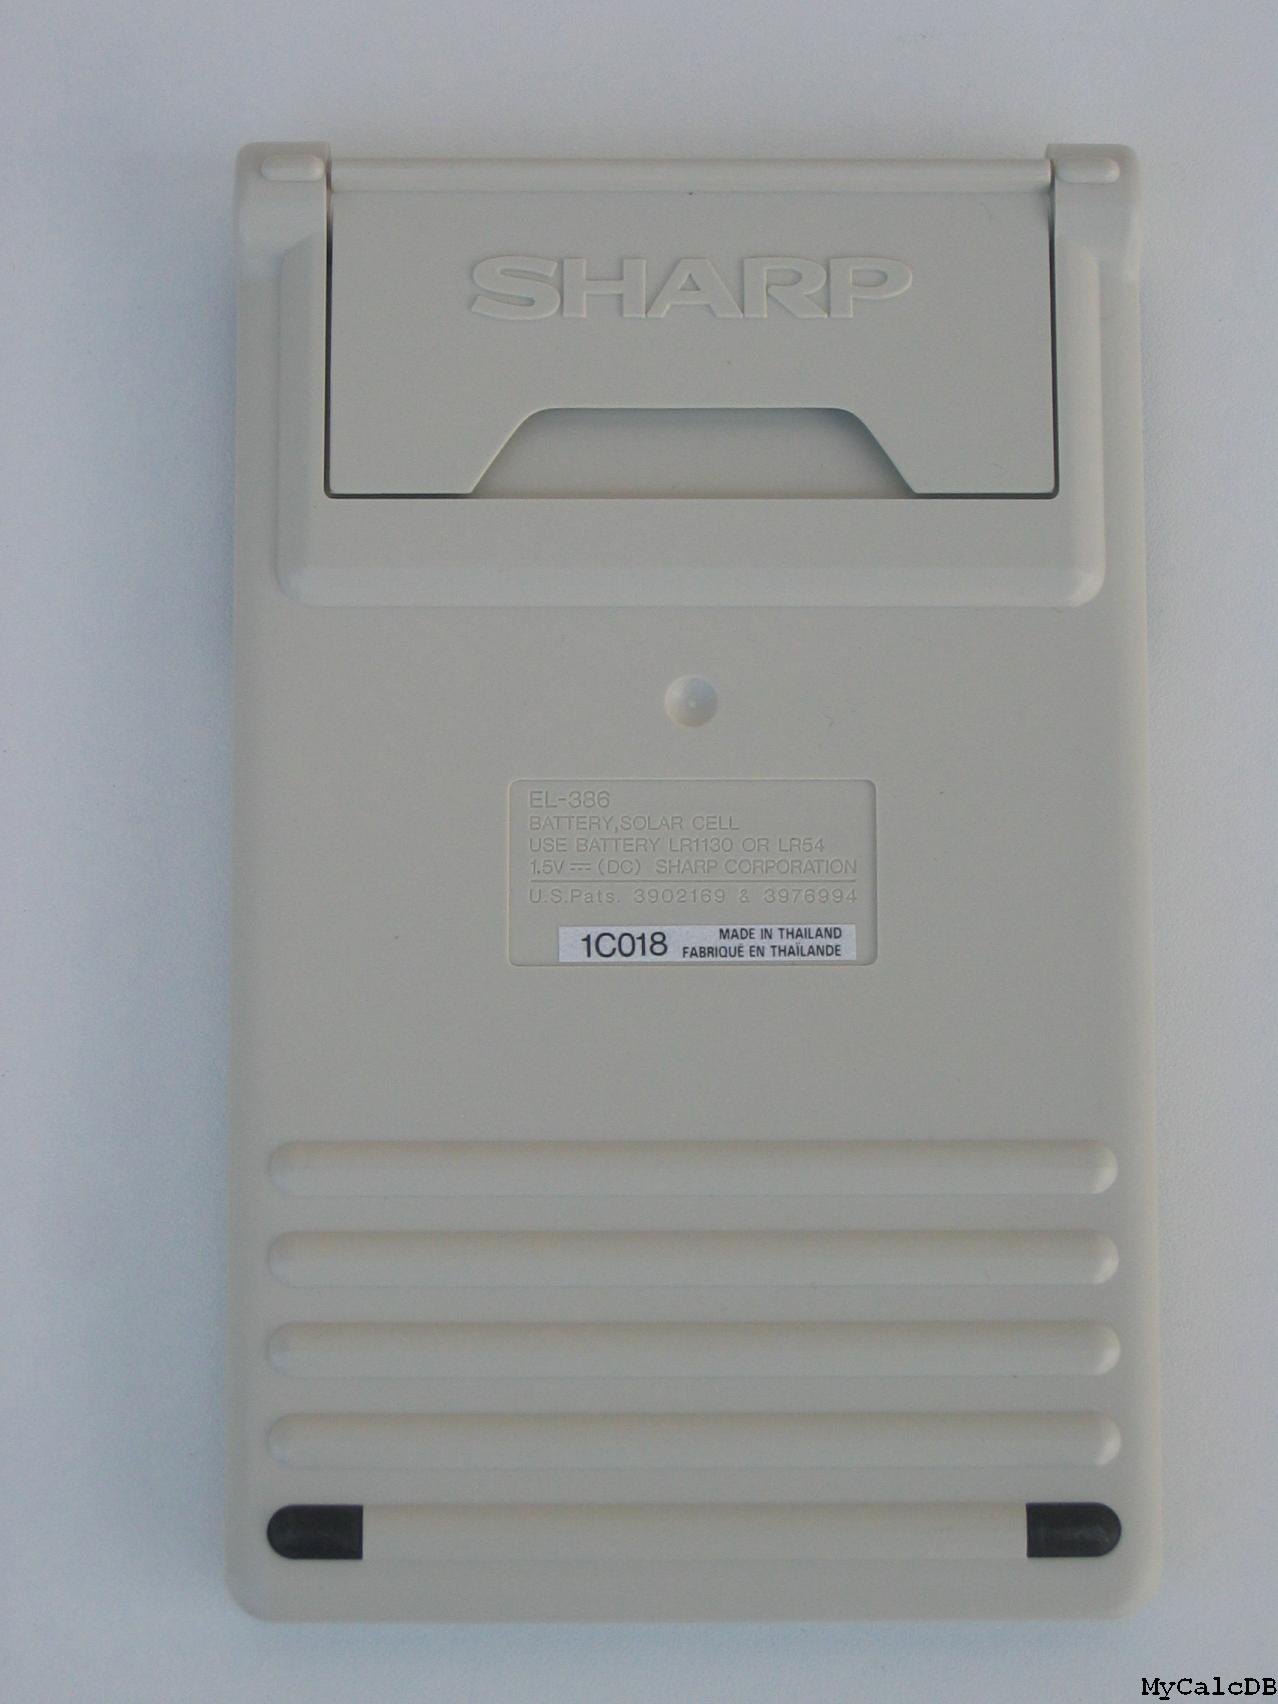 Sharp EL-386